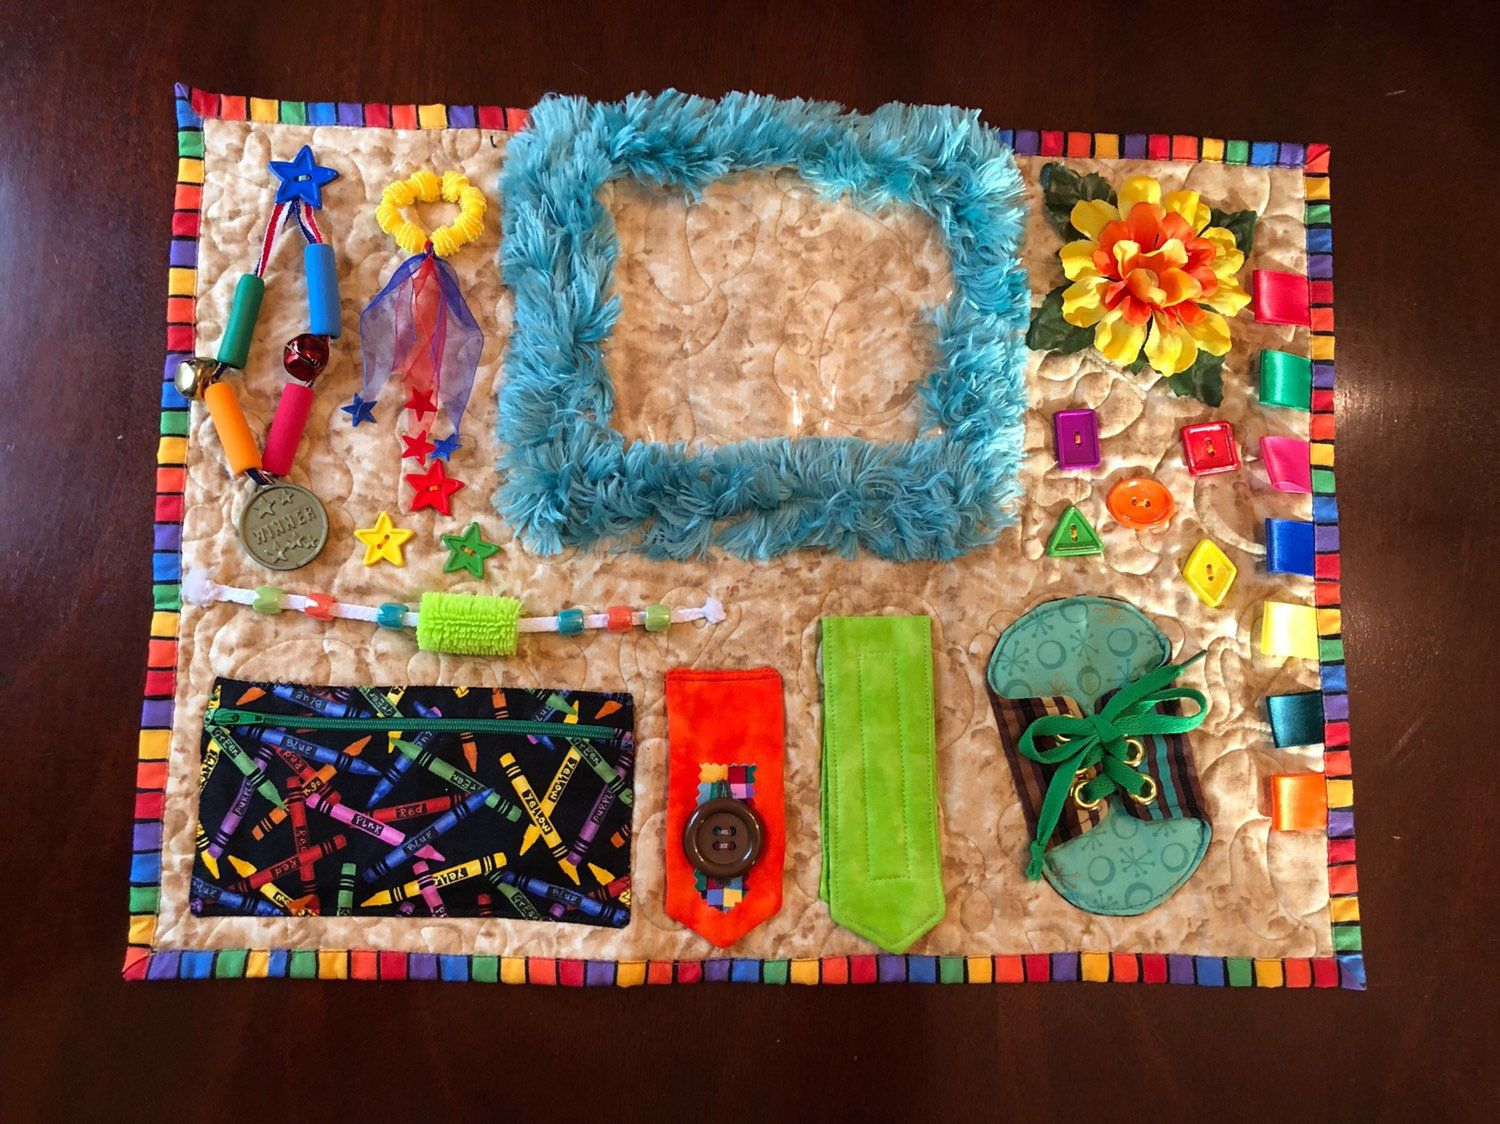 Alzheimers quilt also called fidget blanket is a etsy